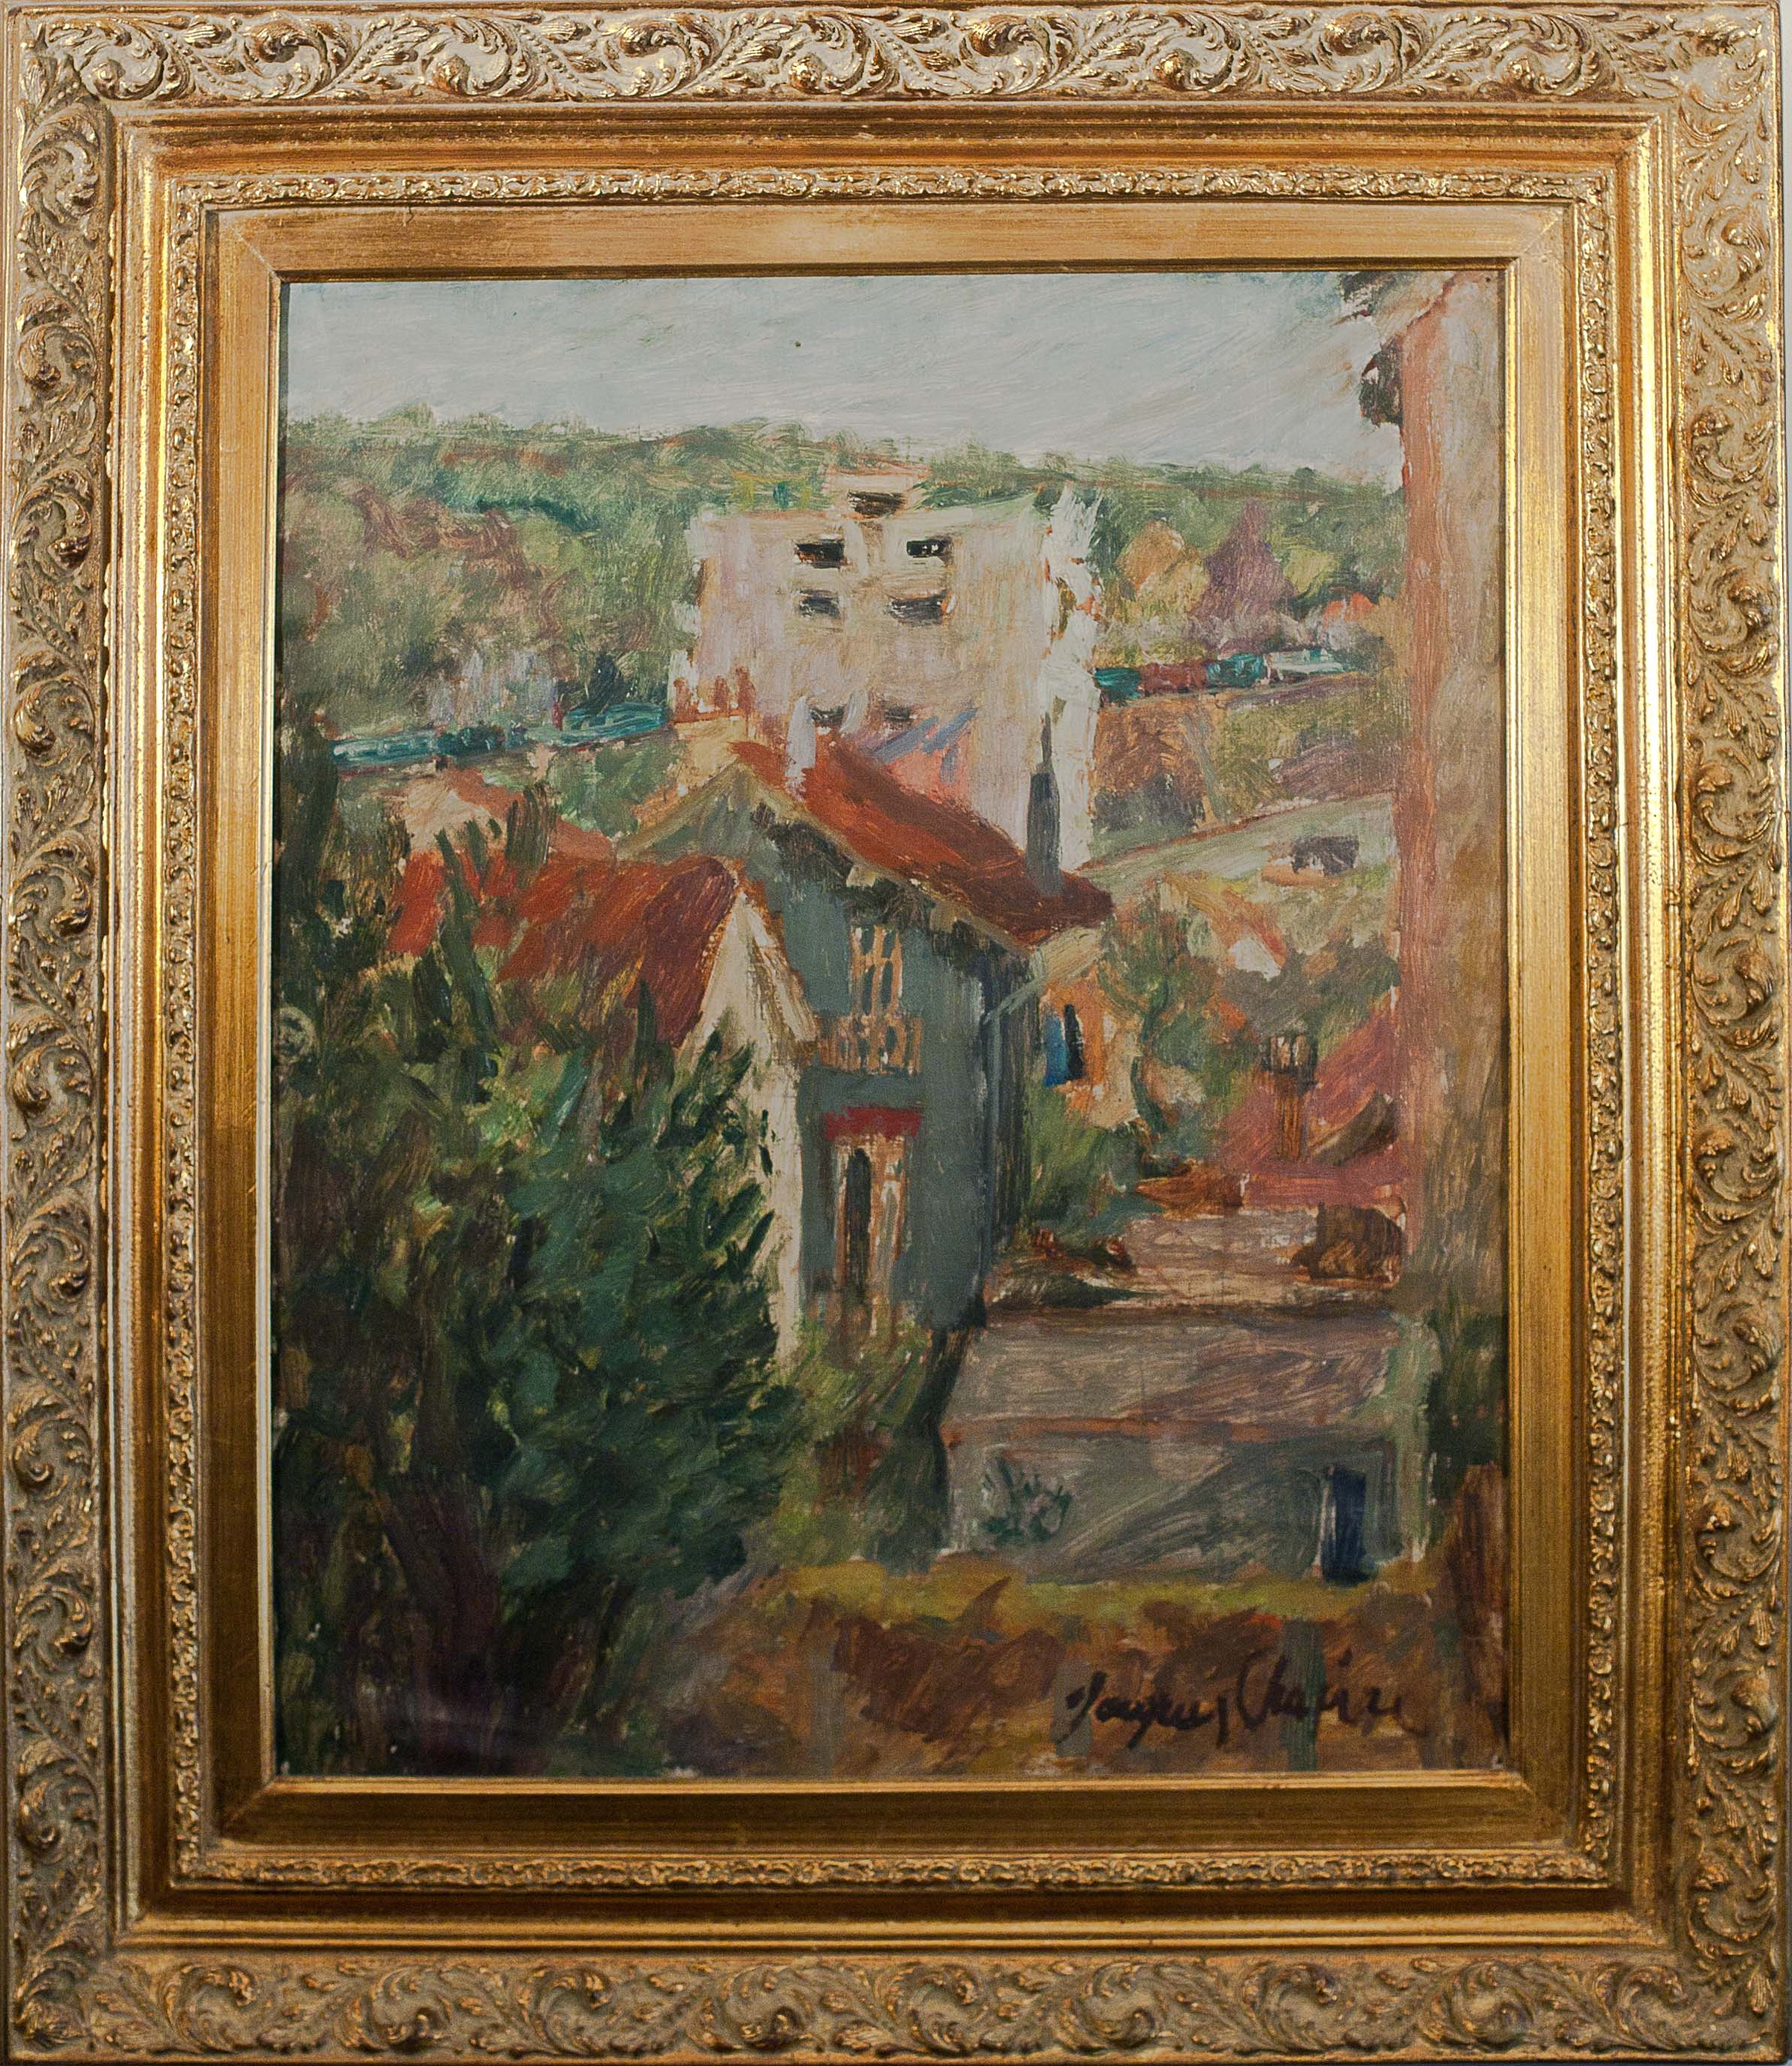 South of France by Jacques Chapiro. Oil on canvas. 19.0 in x 23.0 in. 1965